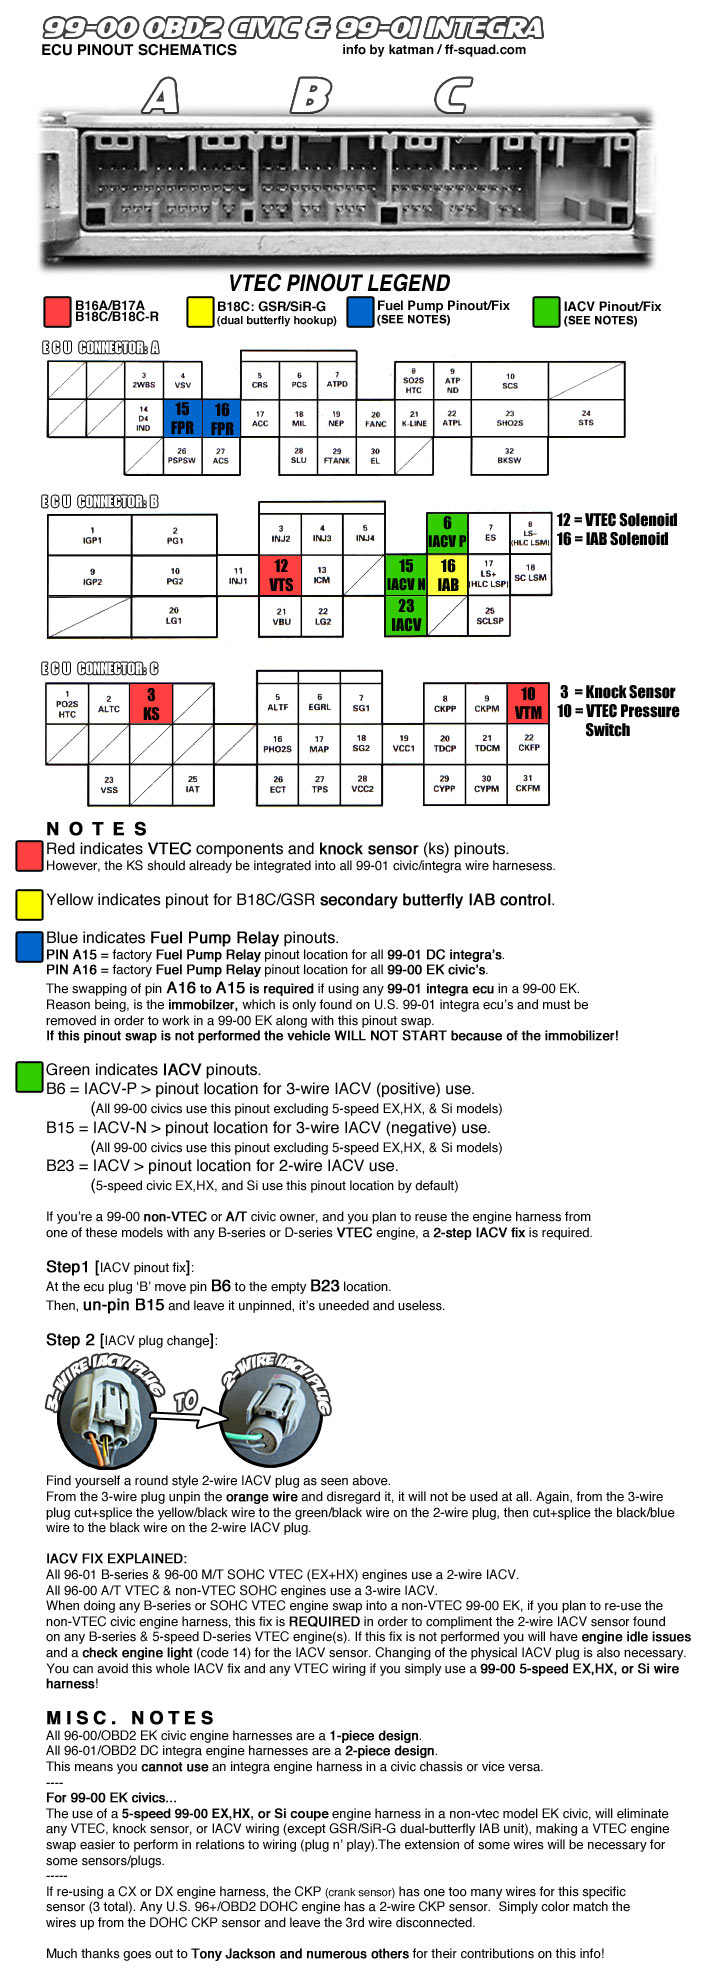 integra wiring diagram micro usb pinout code 9 cylinder position sensor - honda-tech honda forum discussion